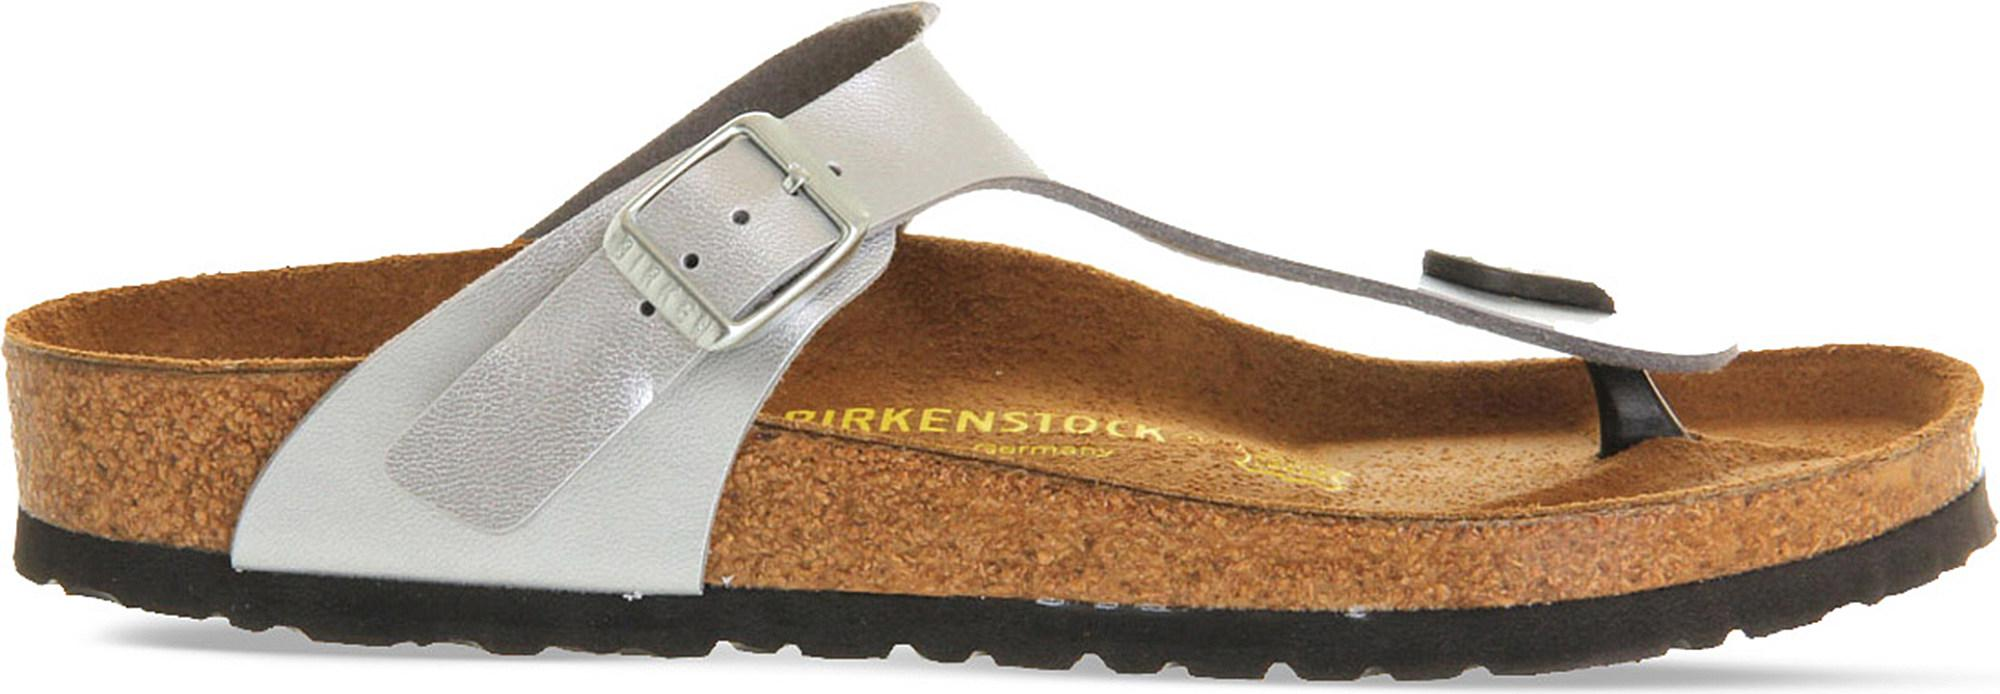 234453c54661 Lyst - Birkenstock Faux-leather Thong Sandals - Save 10%